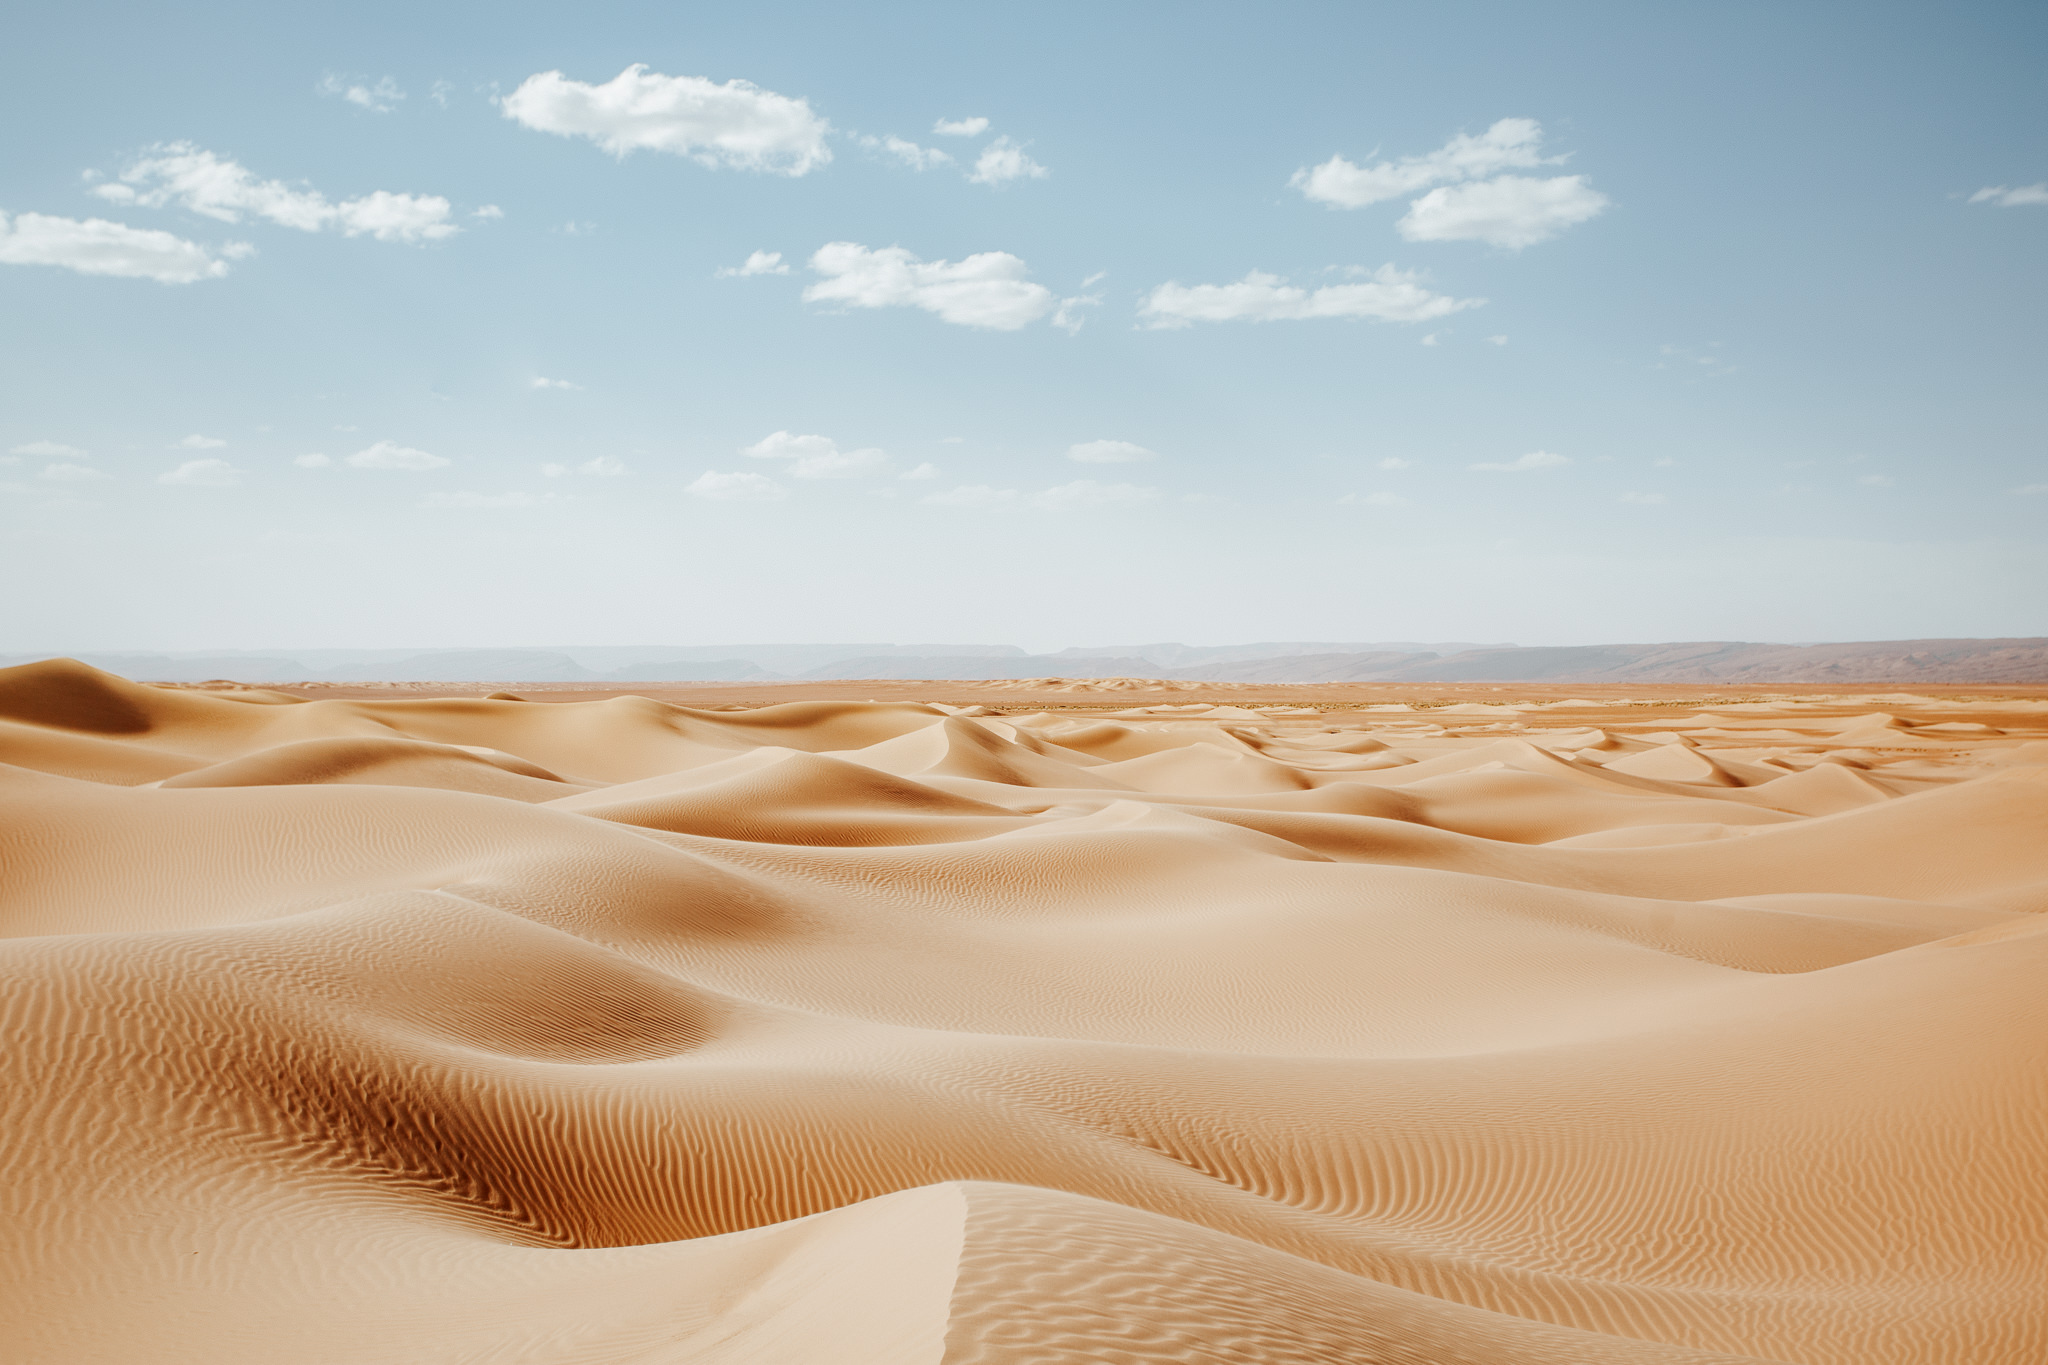 Sand dunes during summer in Sahara desert in Morocco